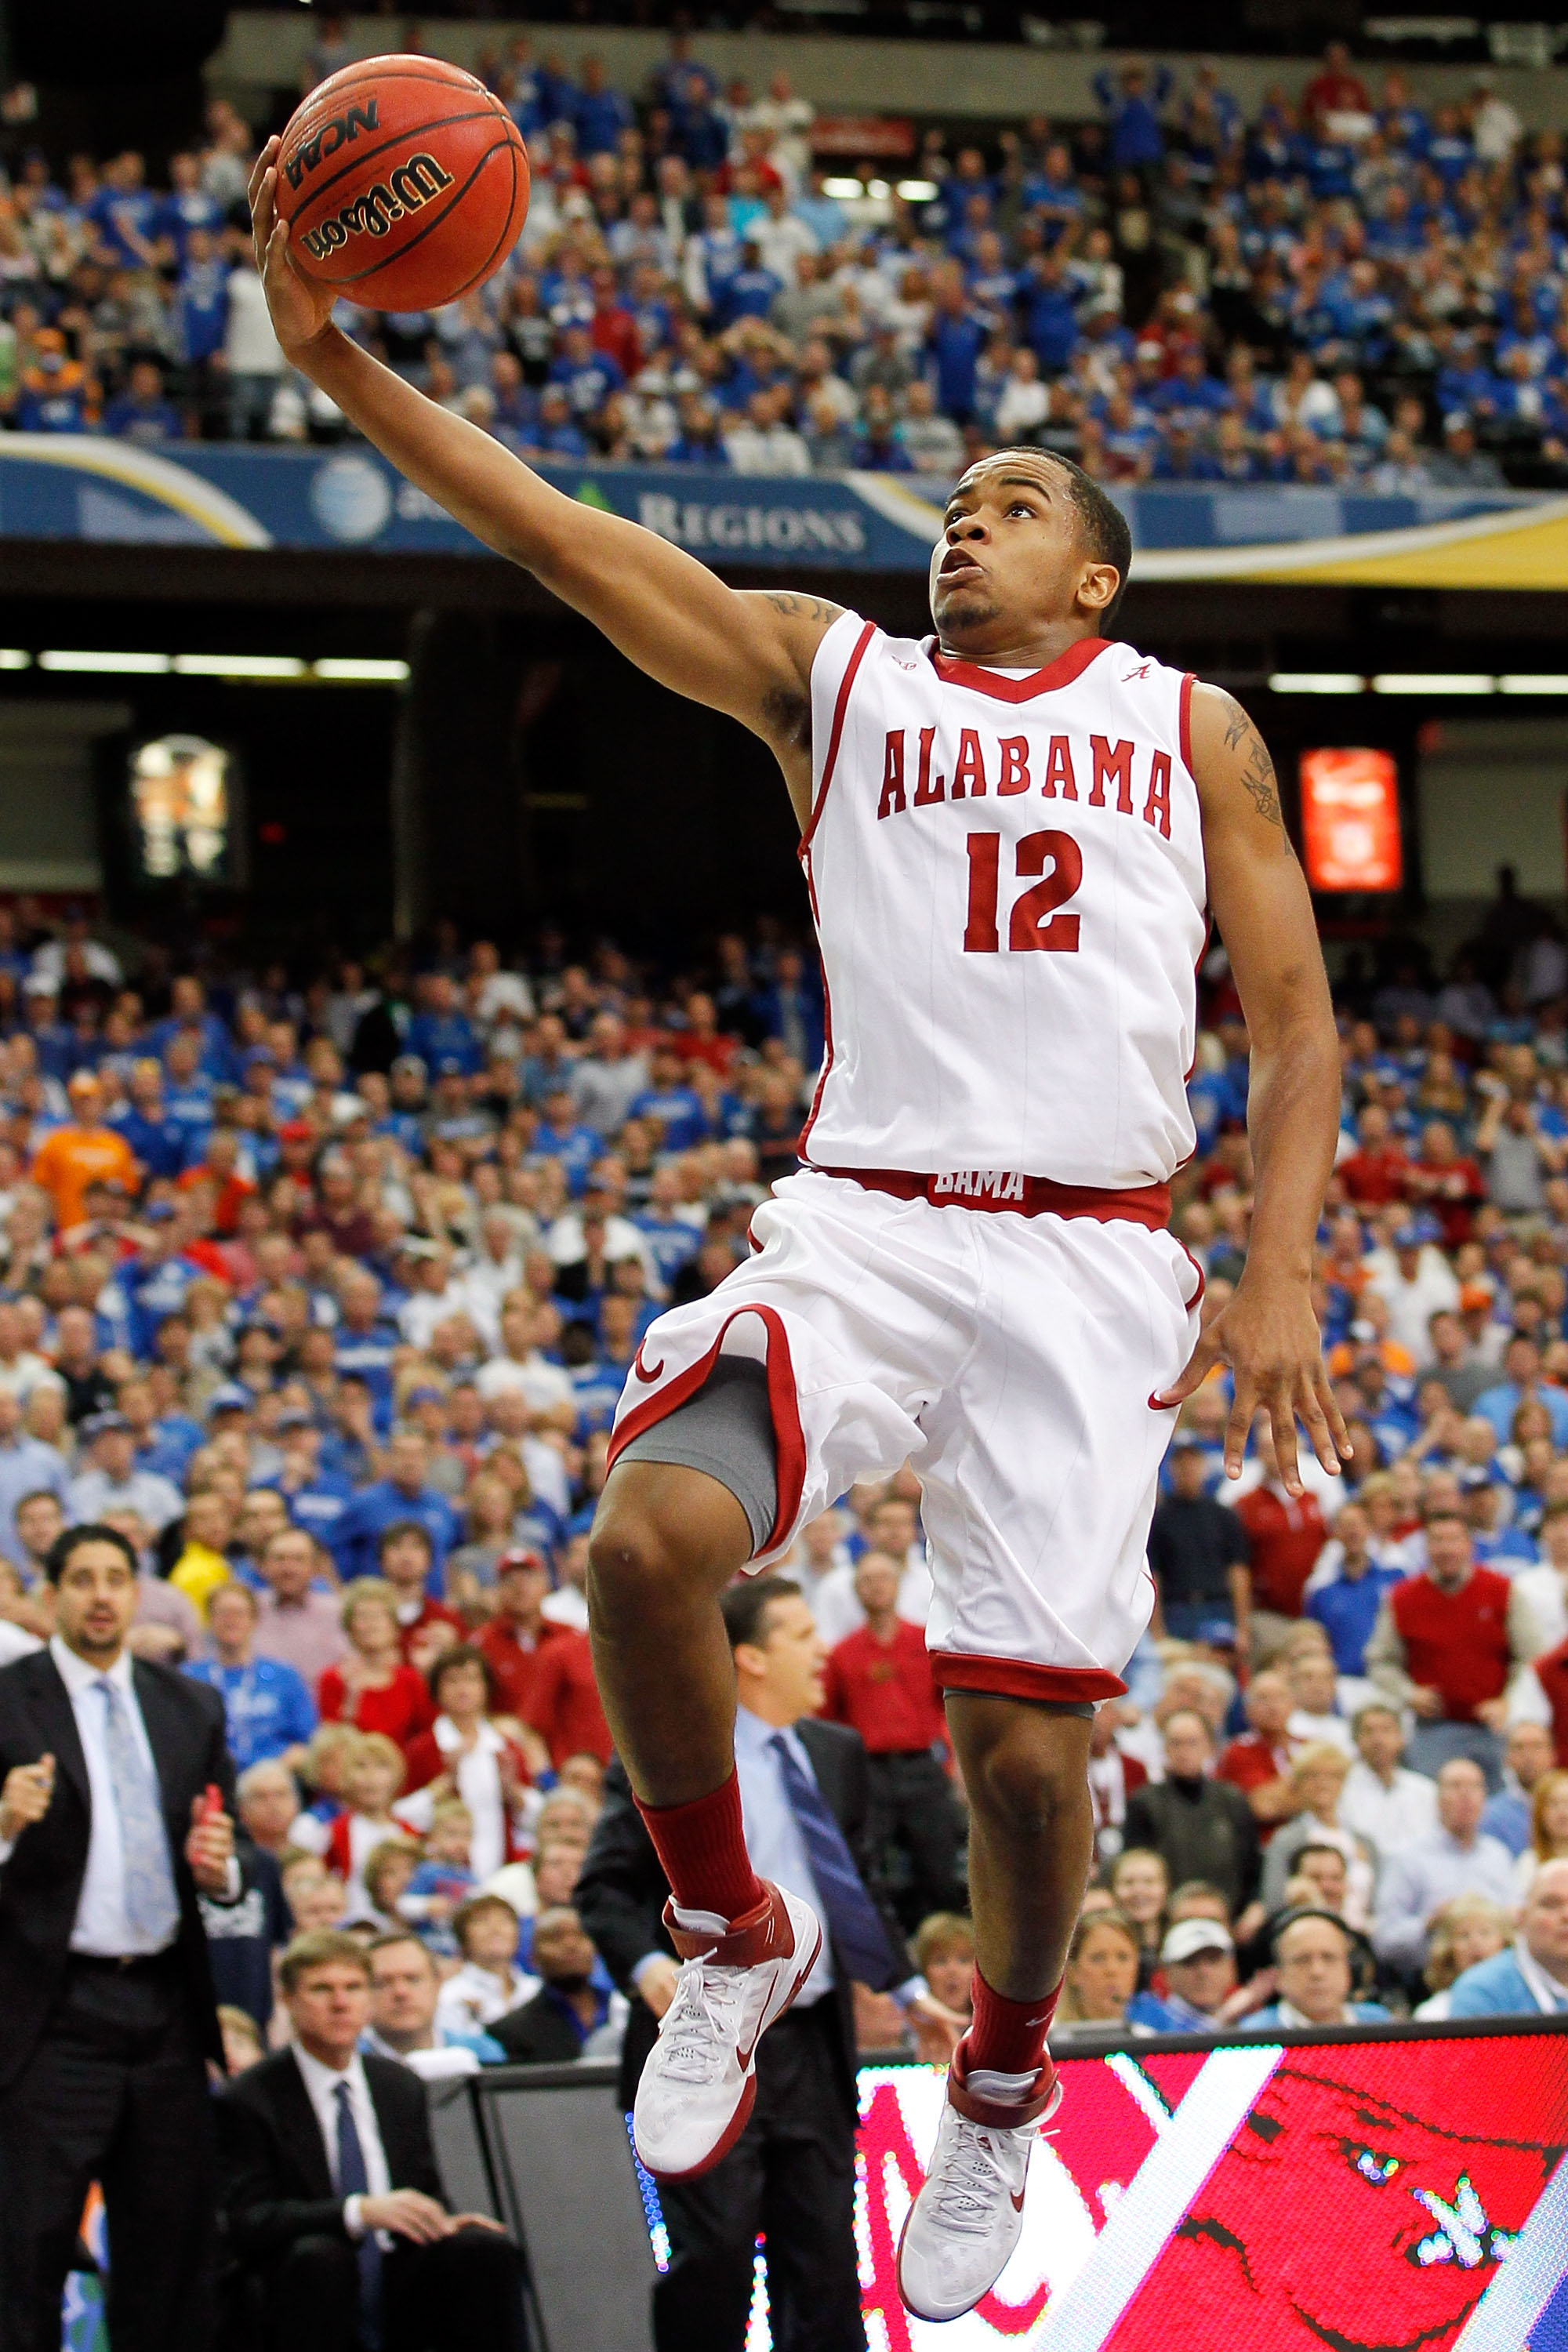 ATLANTA, GA - MARCH 12:  Trevor Releford #12 of the Alabama Crimson Tide shoots against the Kentucky Wildcats during the semifinals of the SEC Men's Basketball Tournament at Georgia Dome on March 12, 2011 in Atlanta, Georgia.  (Photo by Kevin C. Cox/Getty